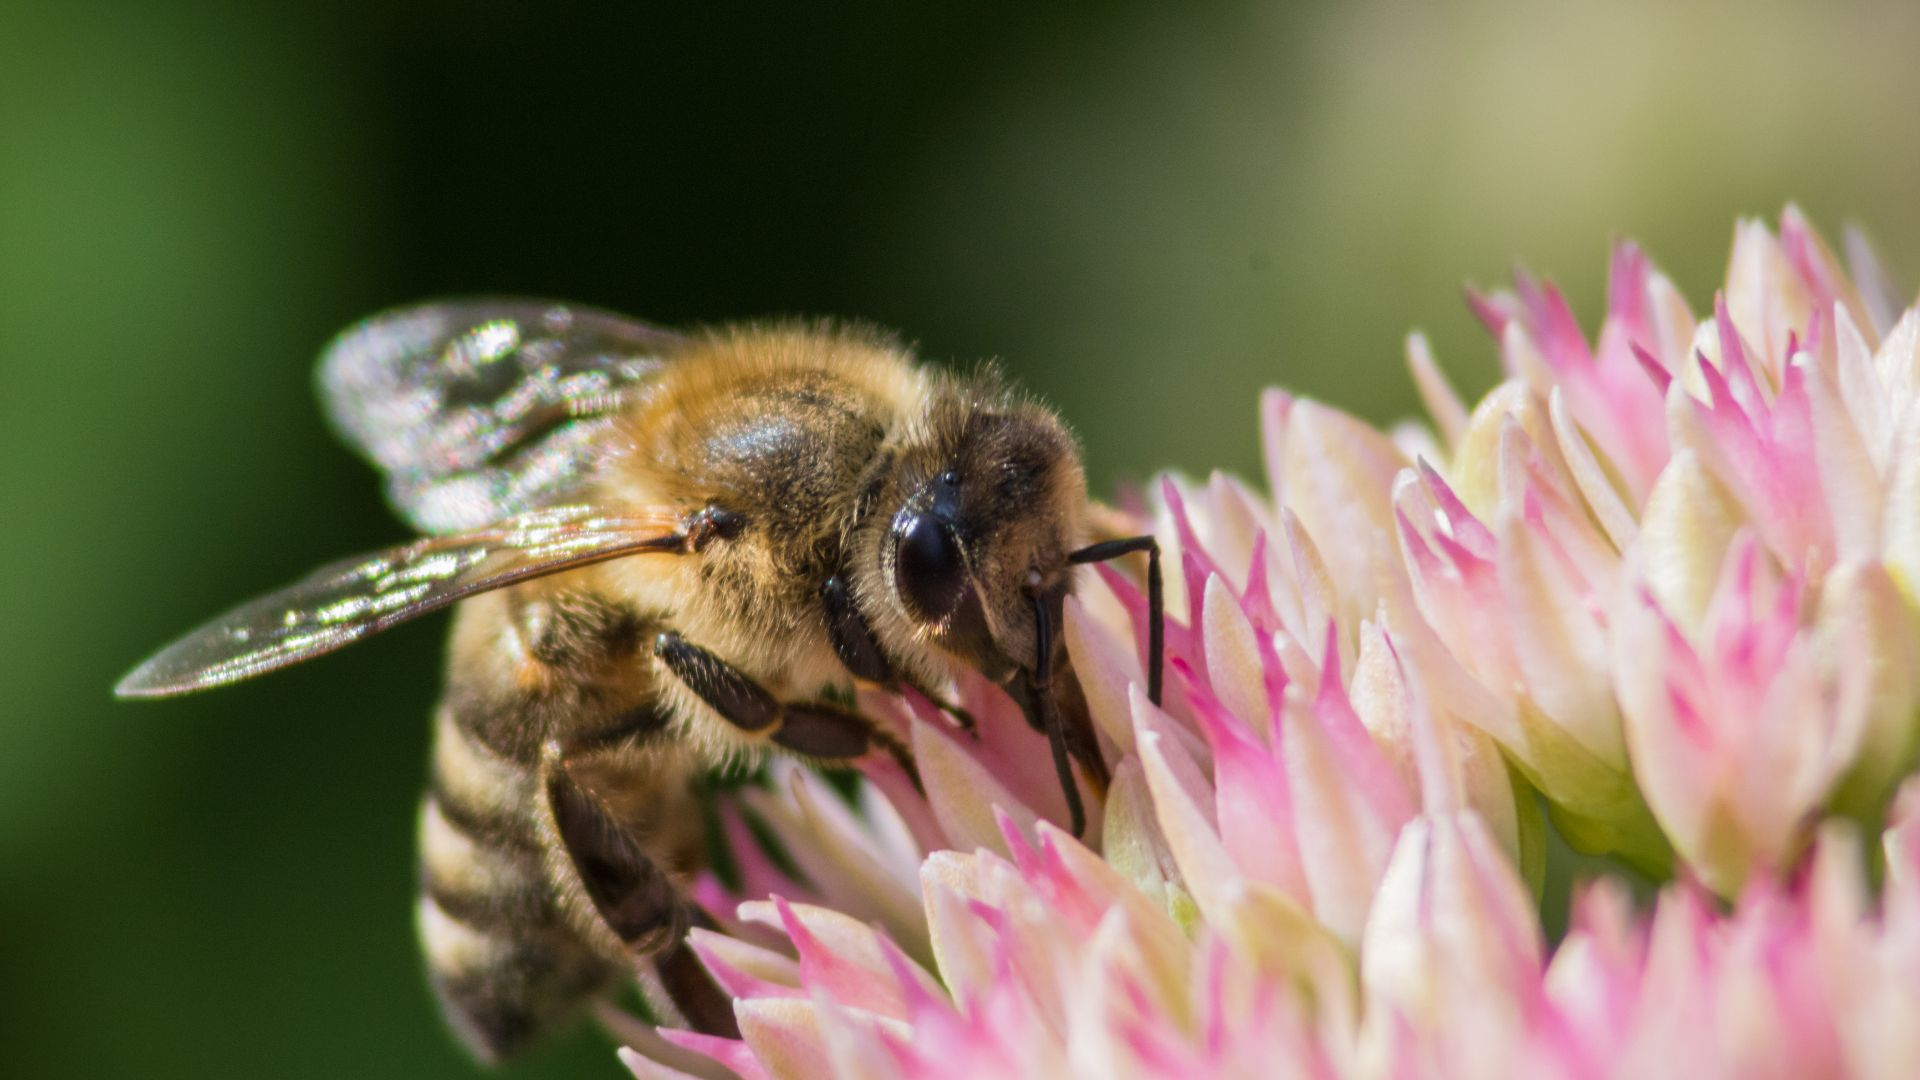 Pollinator garden aims to bolster biodiversity and protect the food supply